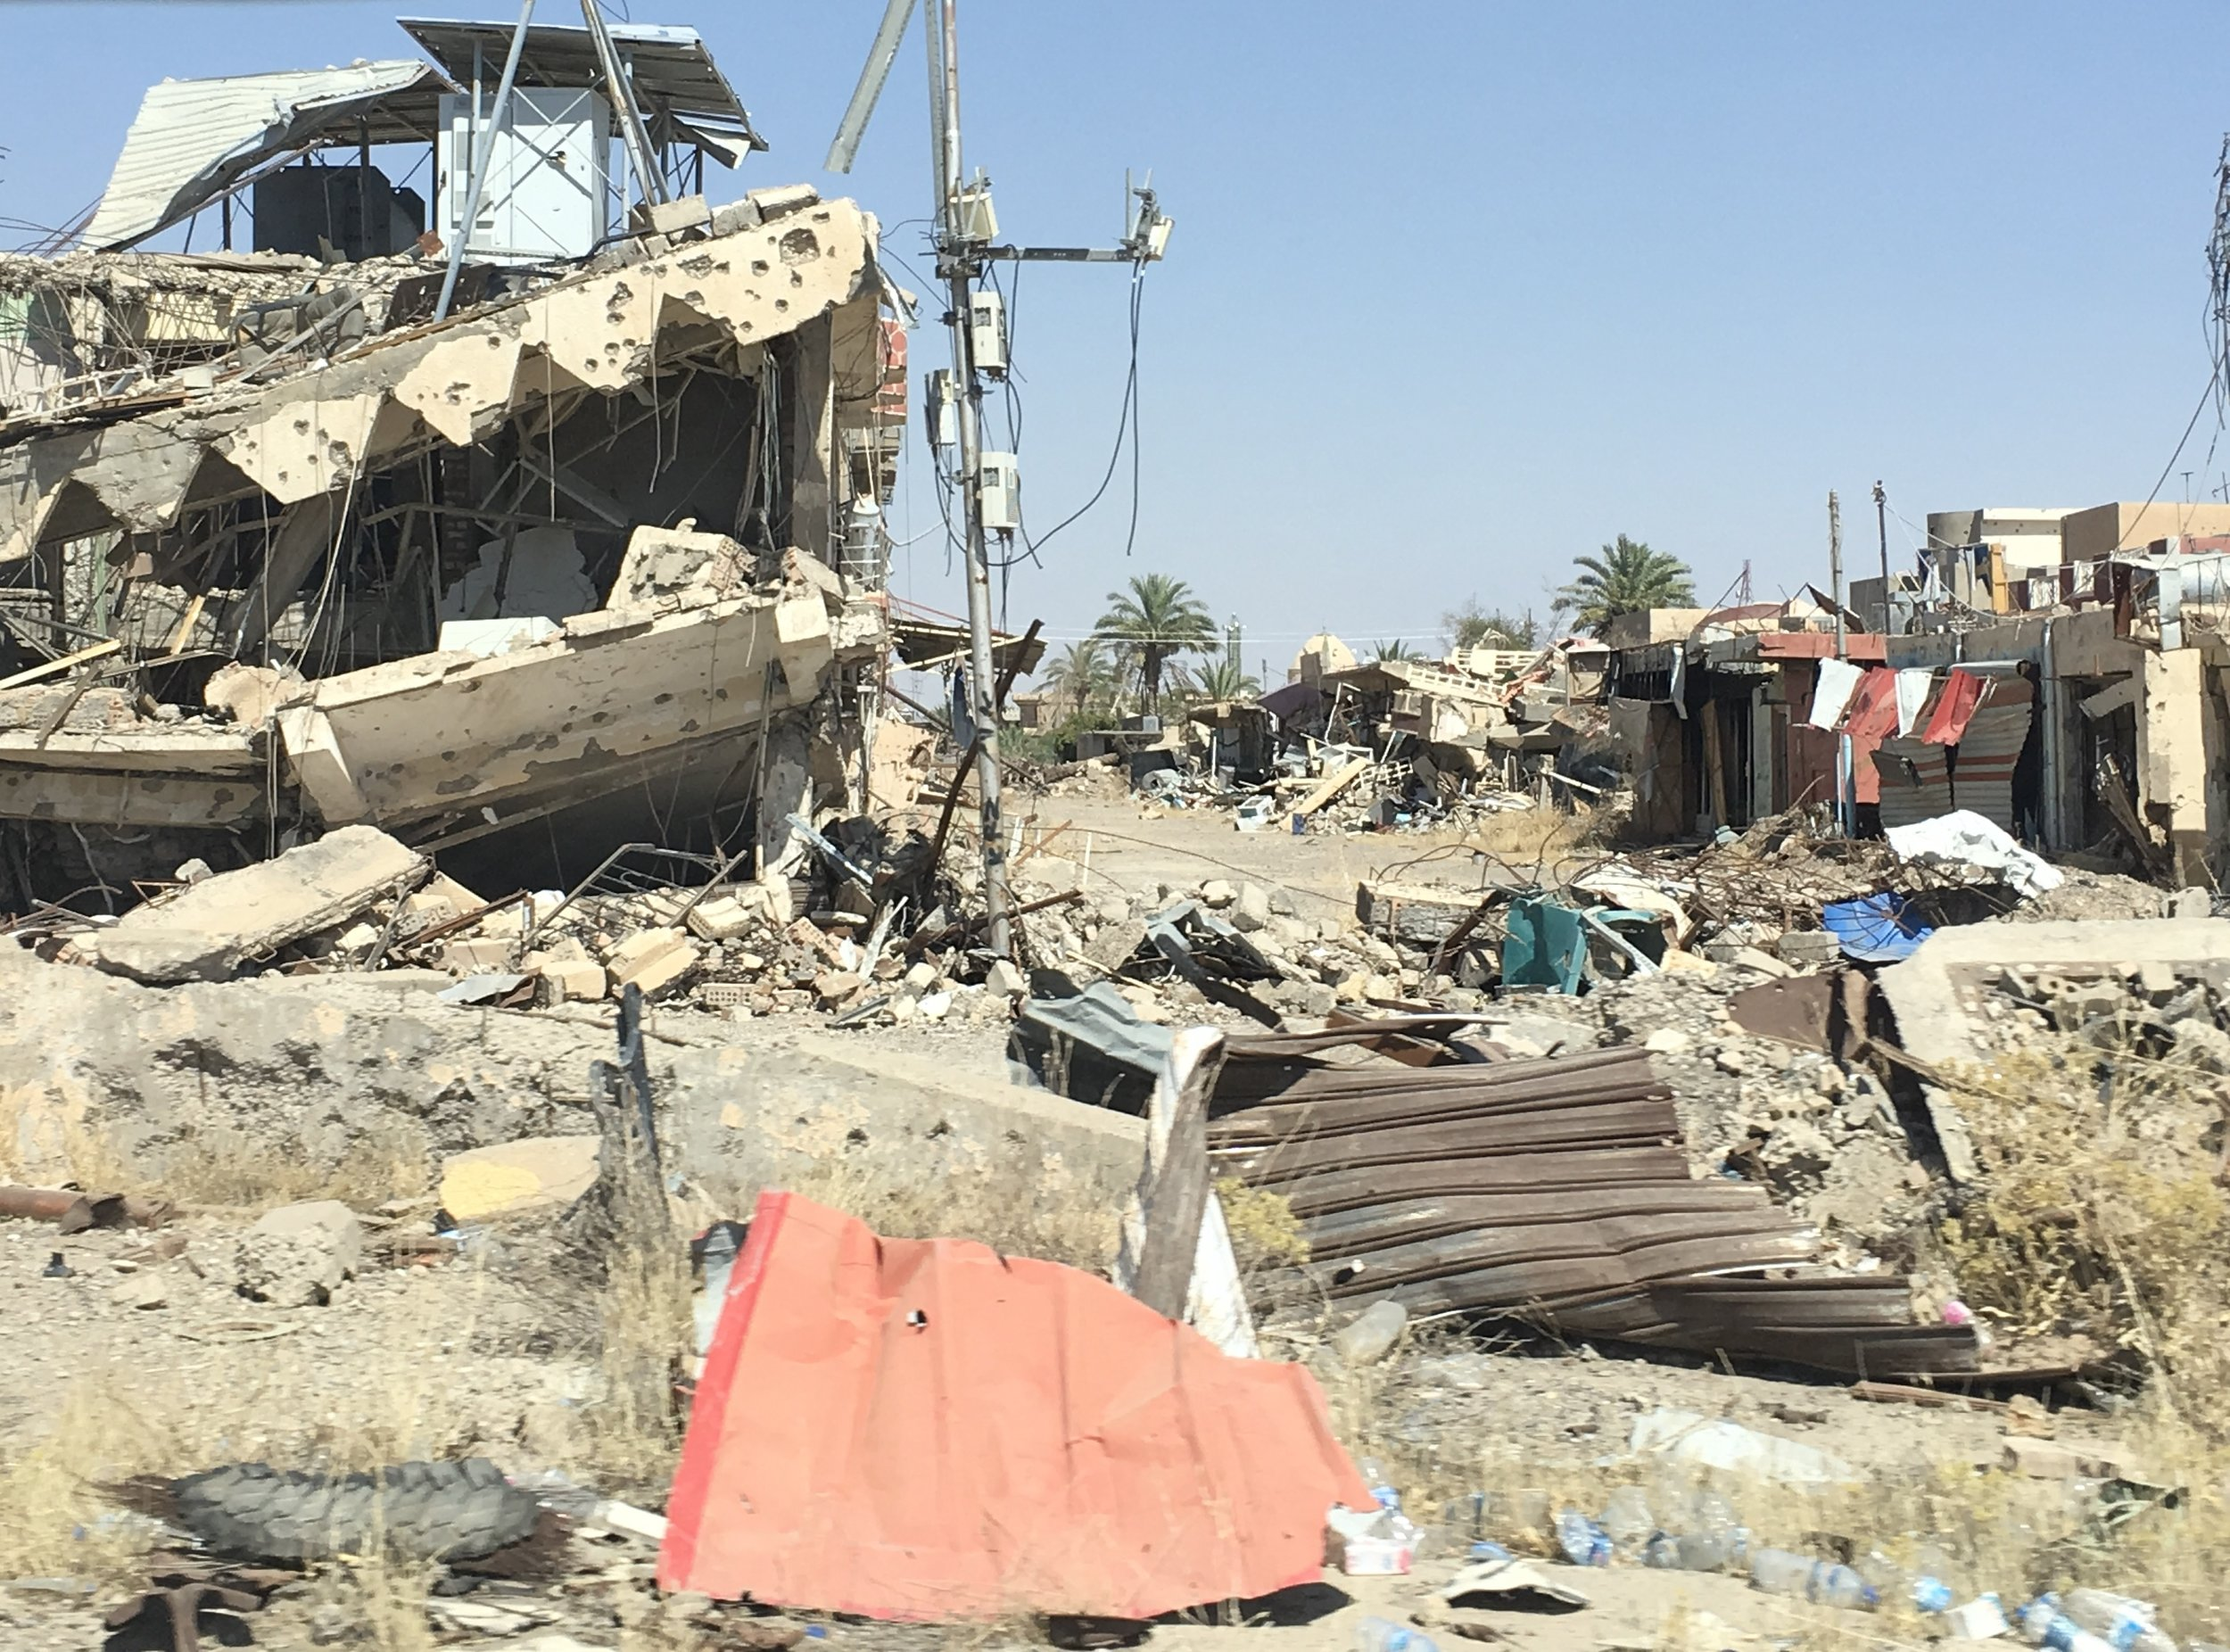 Home for many IDPs in this camp is nearby, but was largely destroyed when ISIS occupied it.